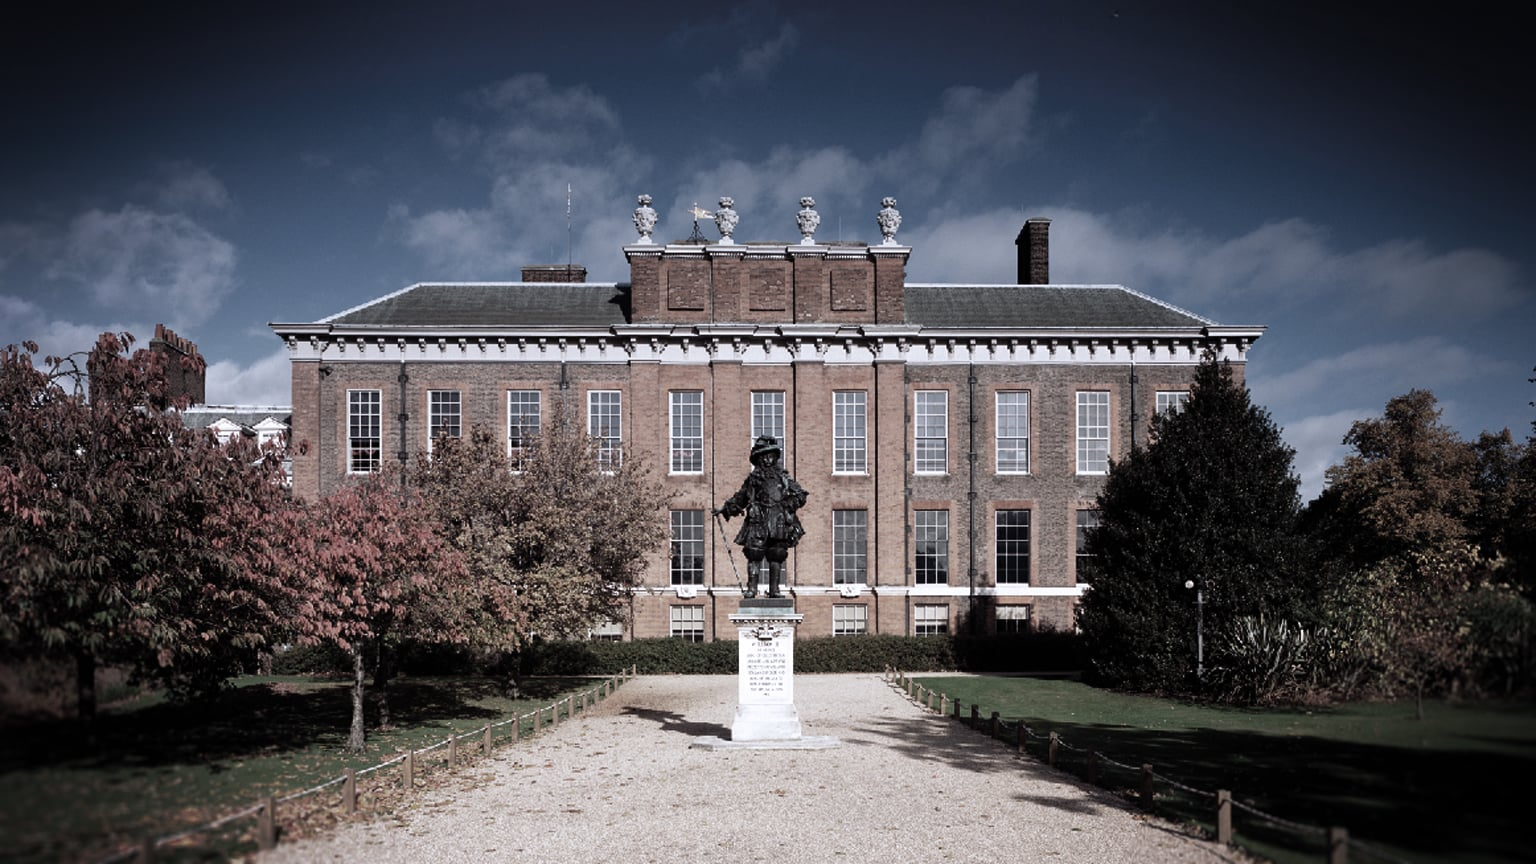 1) Kensington Palace, London - Free entry with National Art Pass